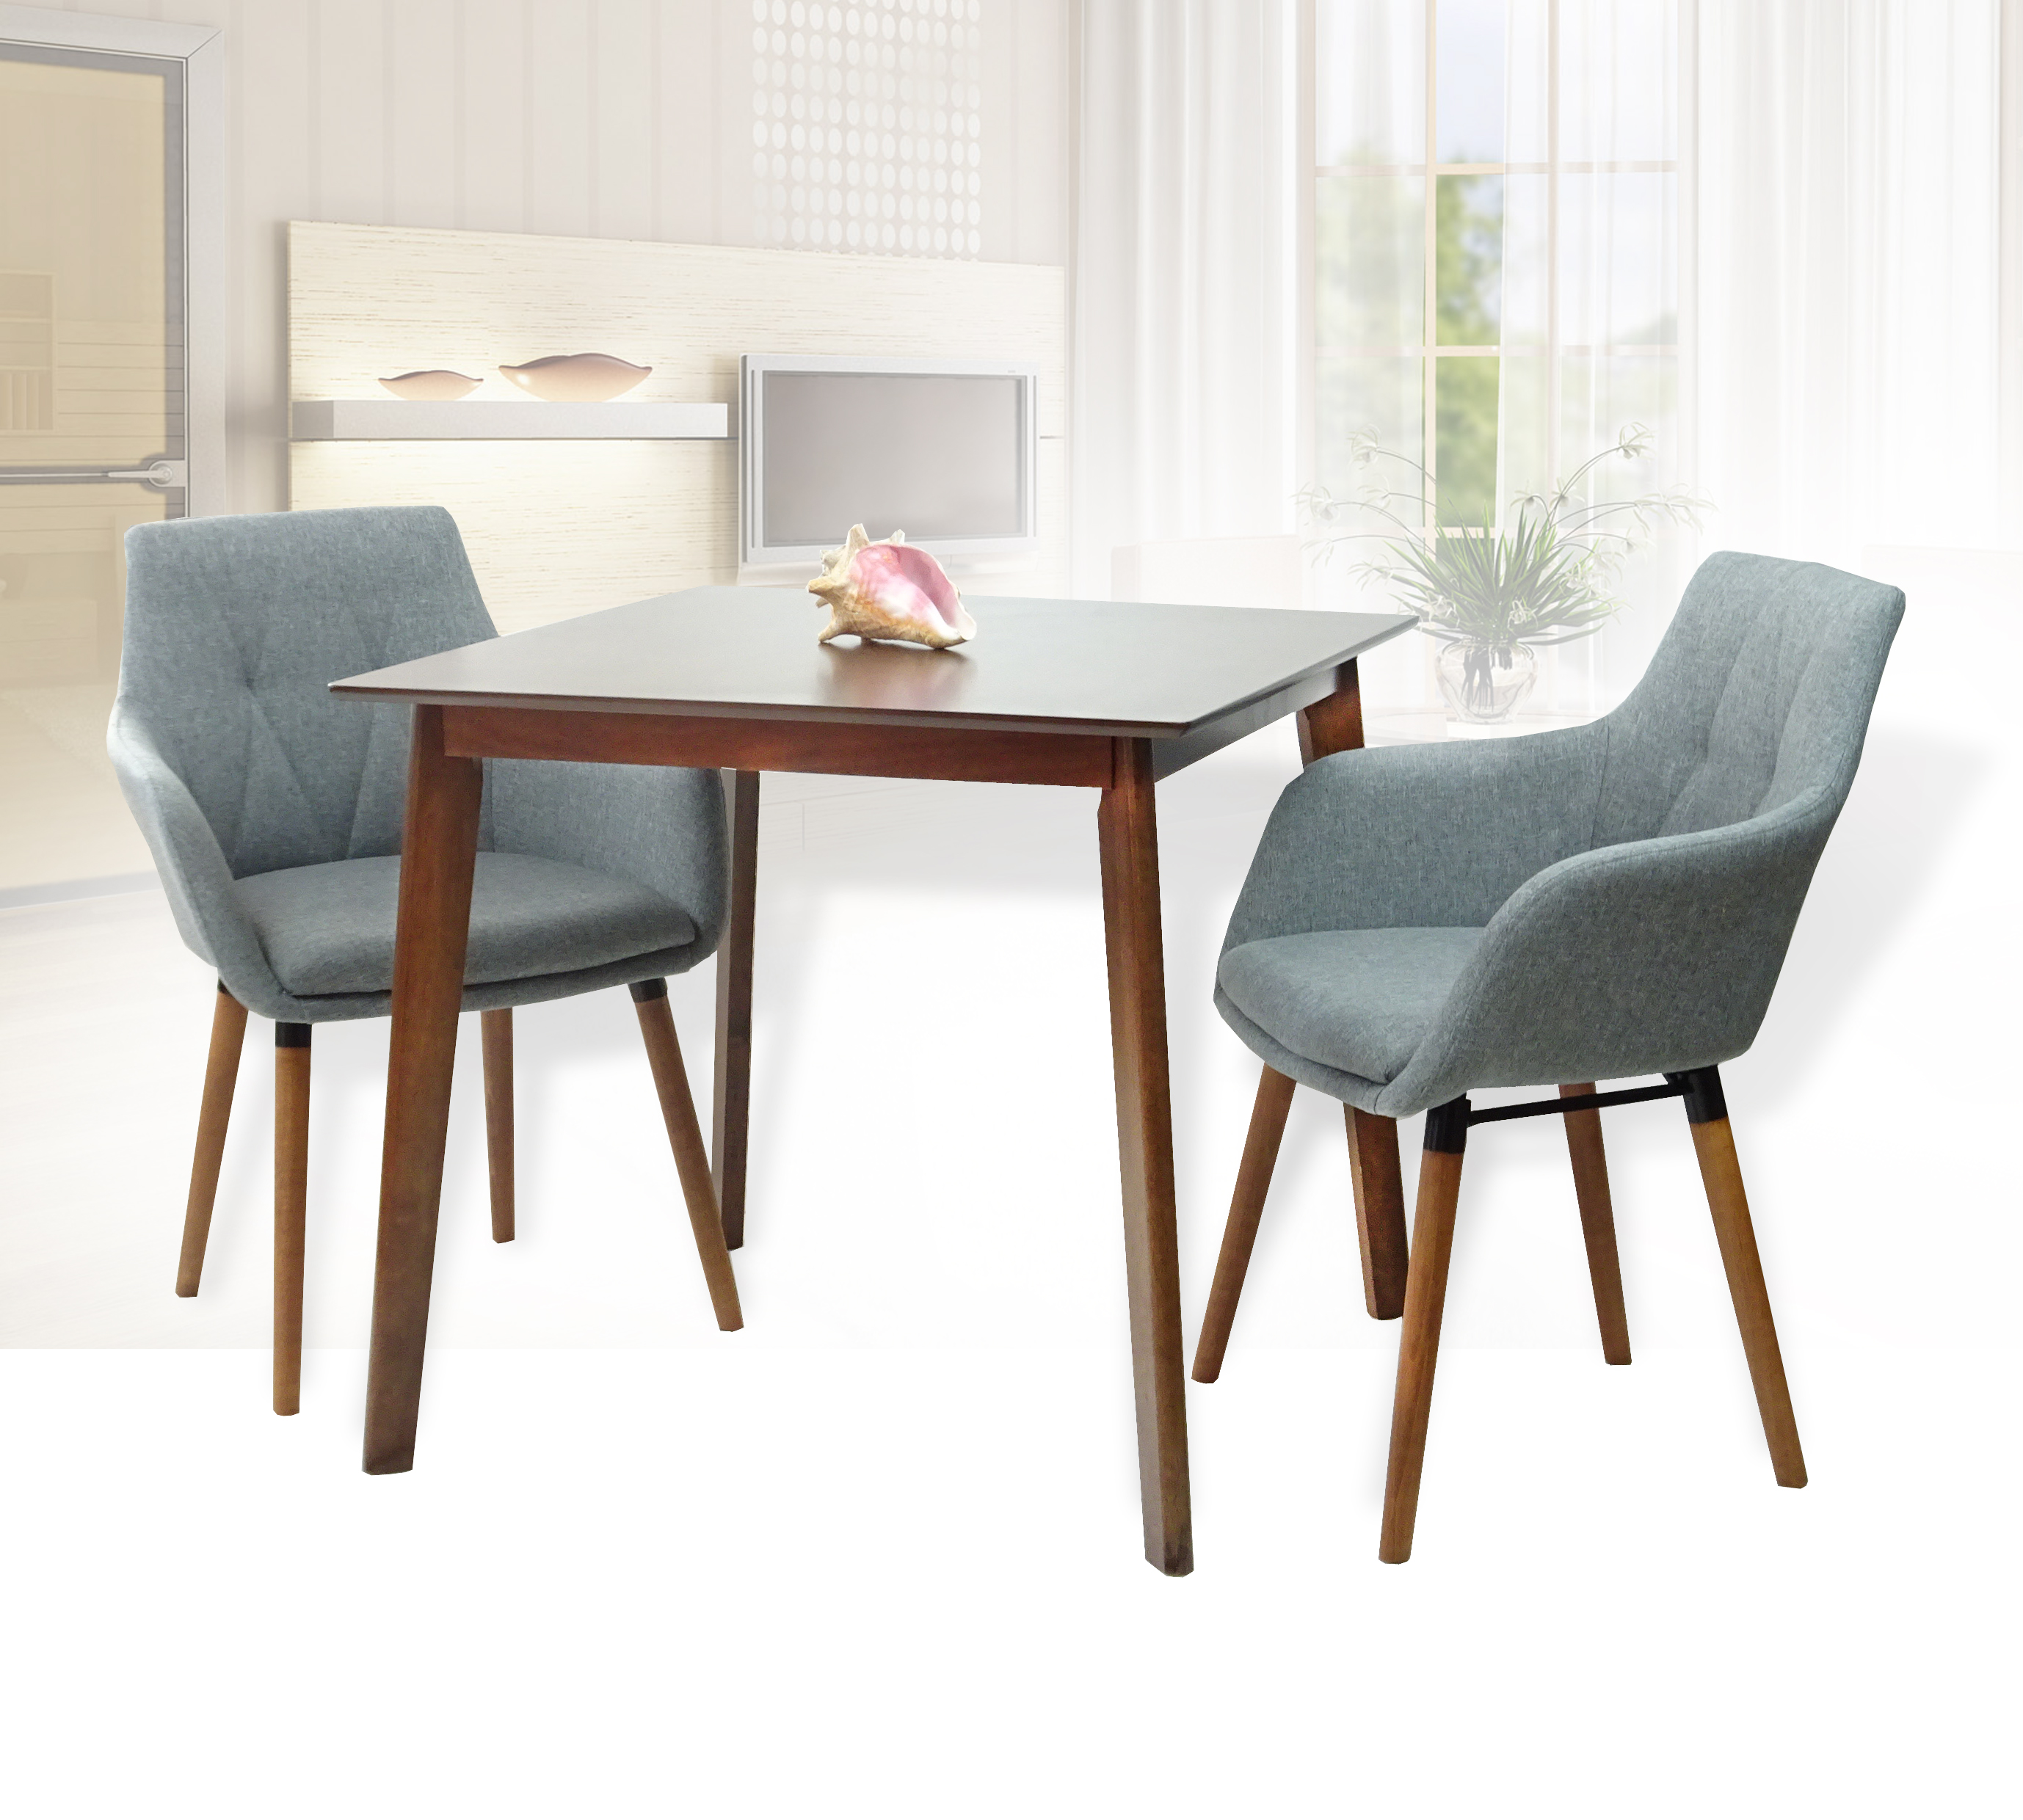 Buy dining kitchen set of 3 square wooden medium brown table with 2 alba armchairs gray color in usa best price free shipping rattan usa